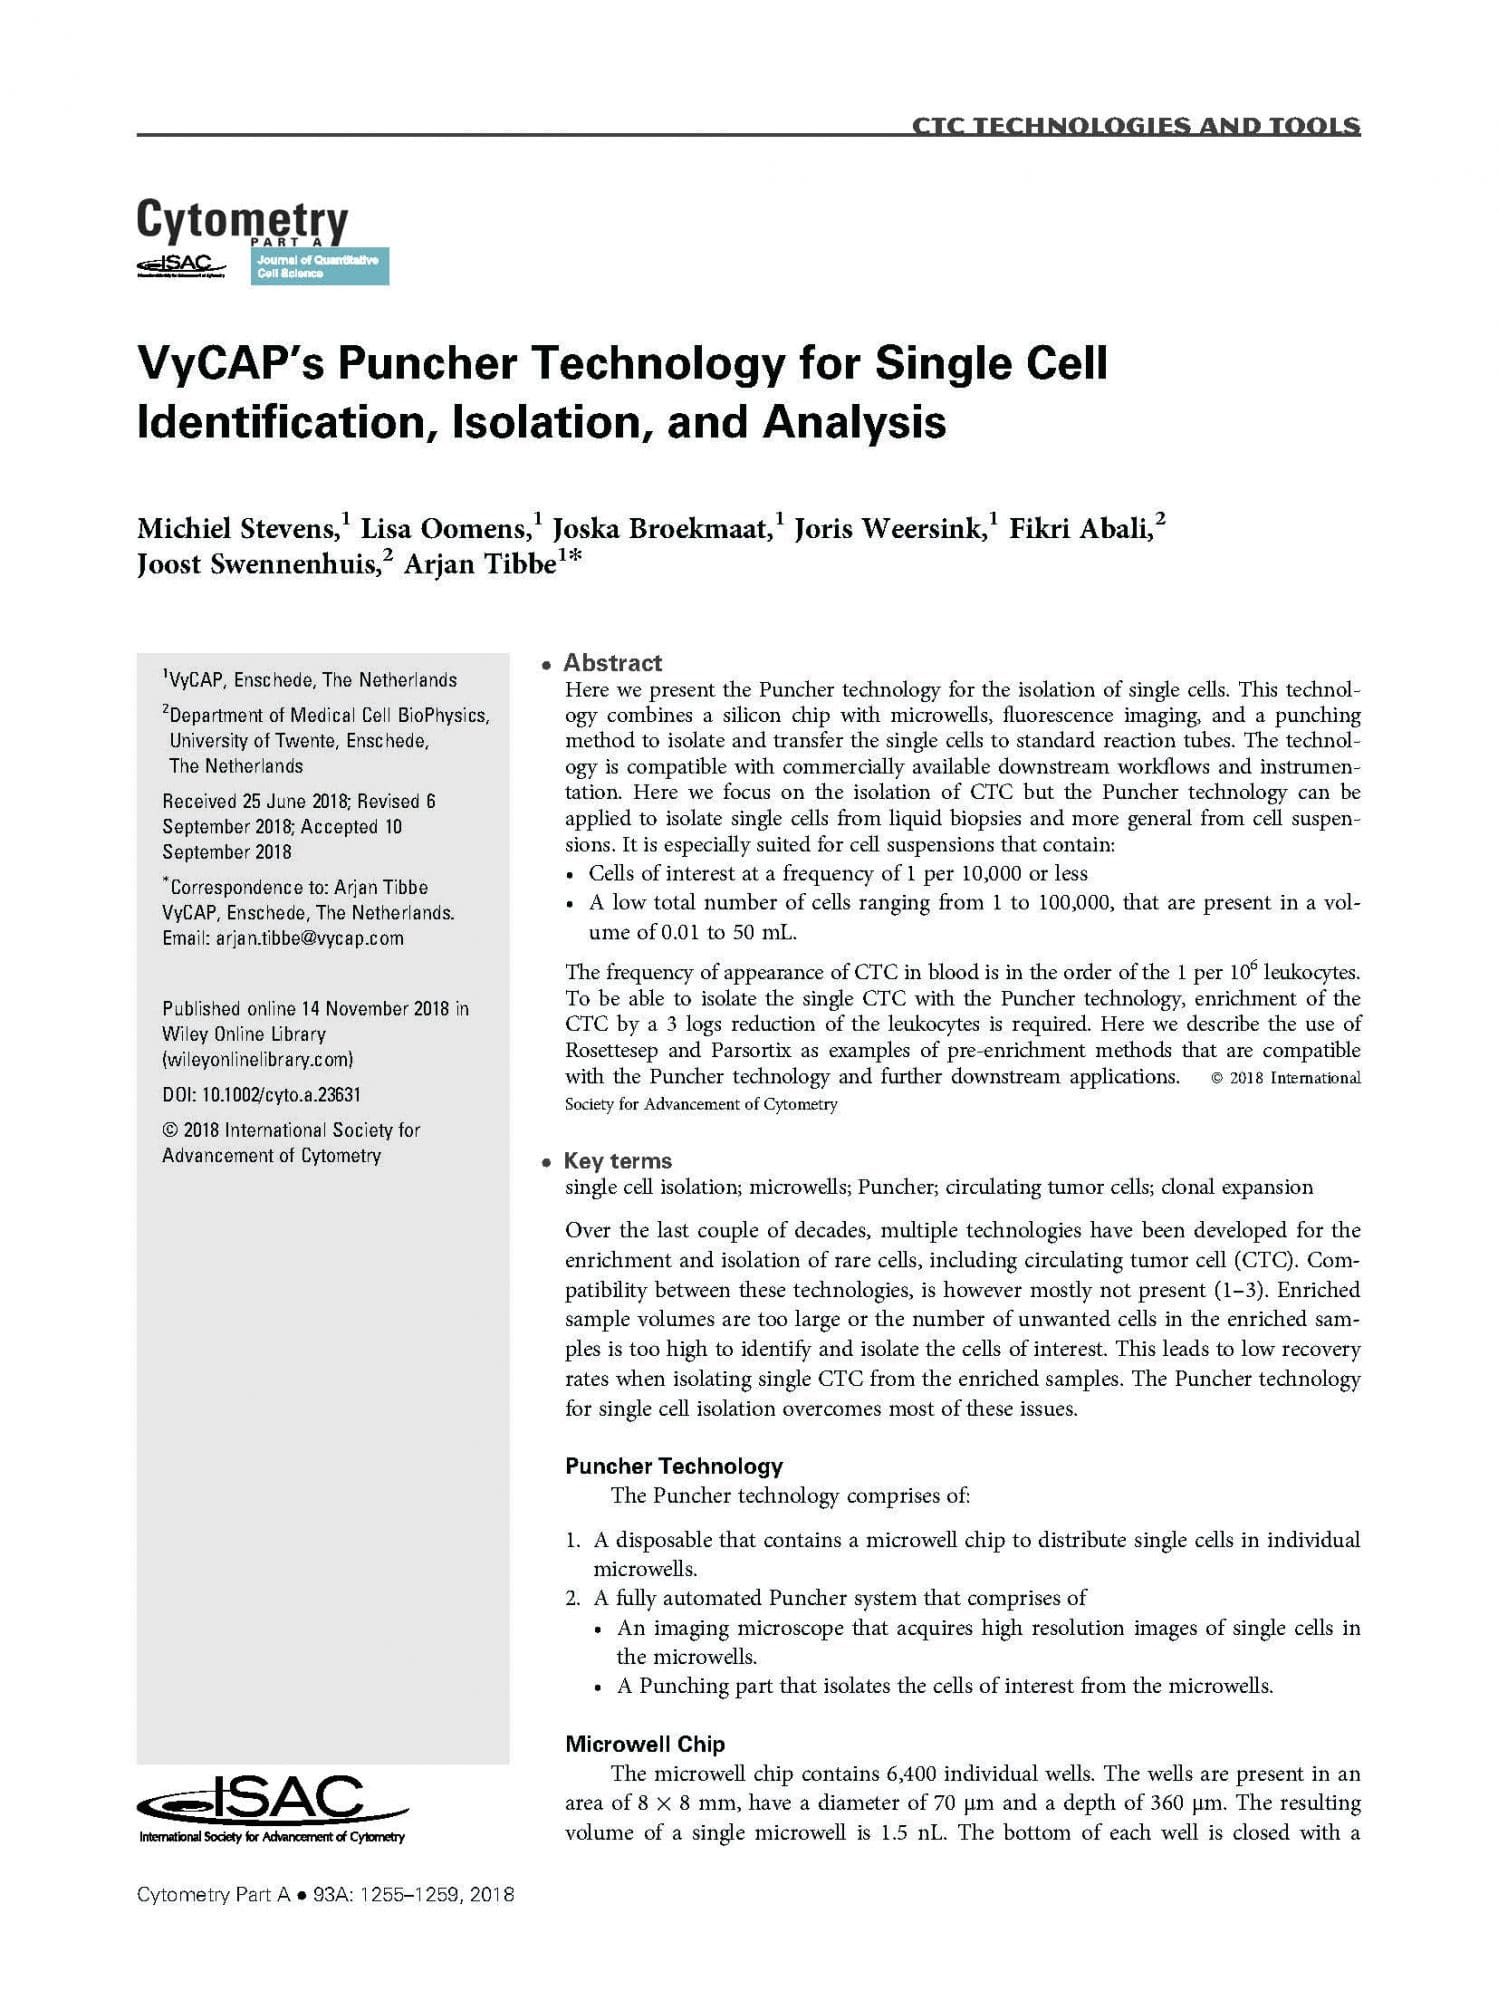 VyCAP's Puncher Technology for Single Cell Identification, Isolation, and Analysis